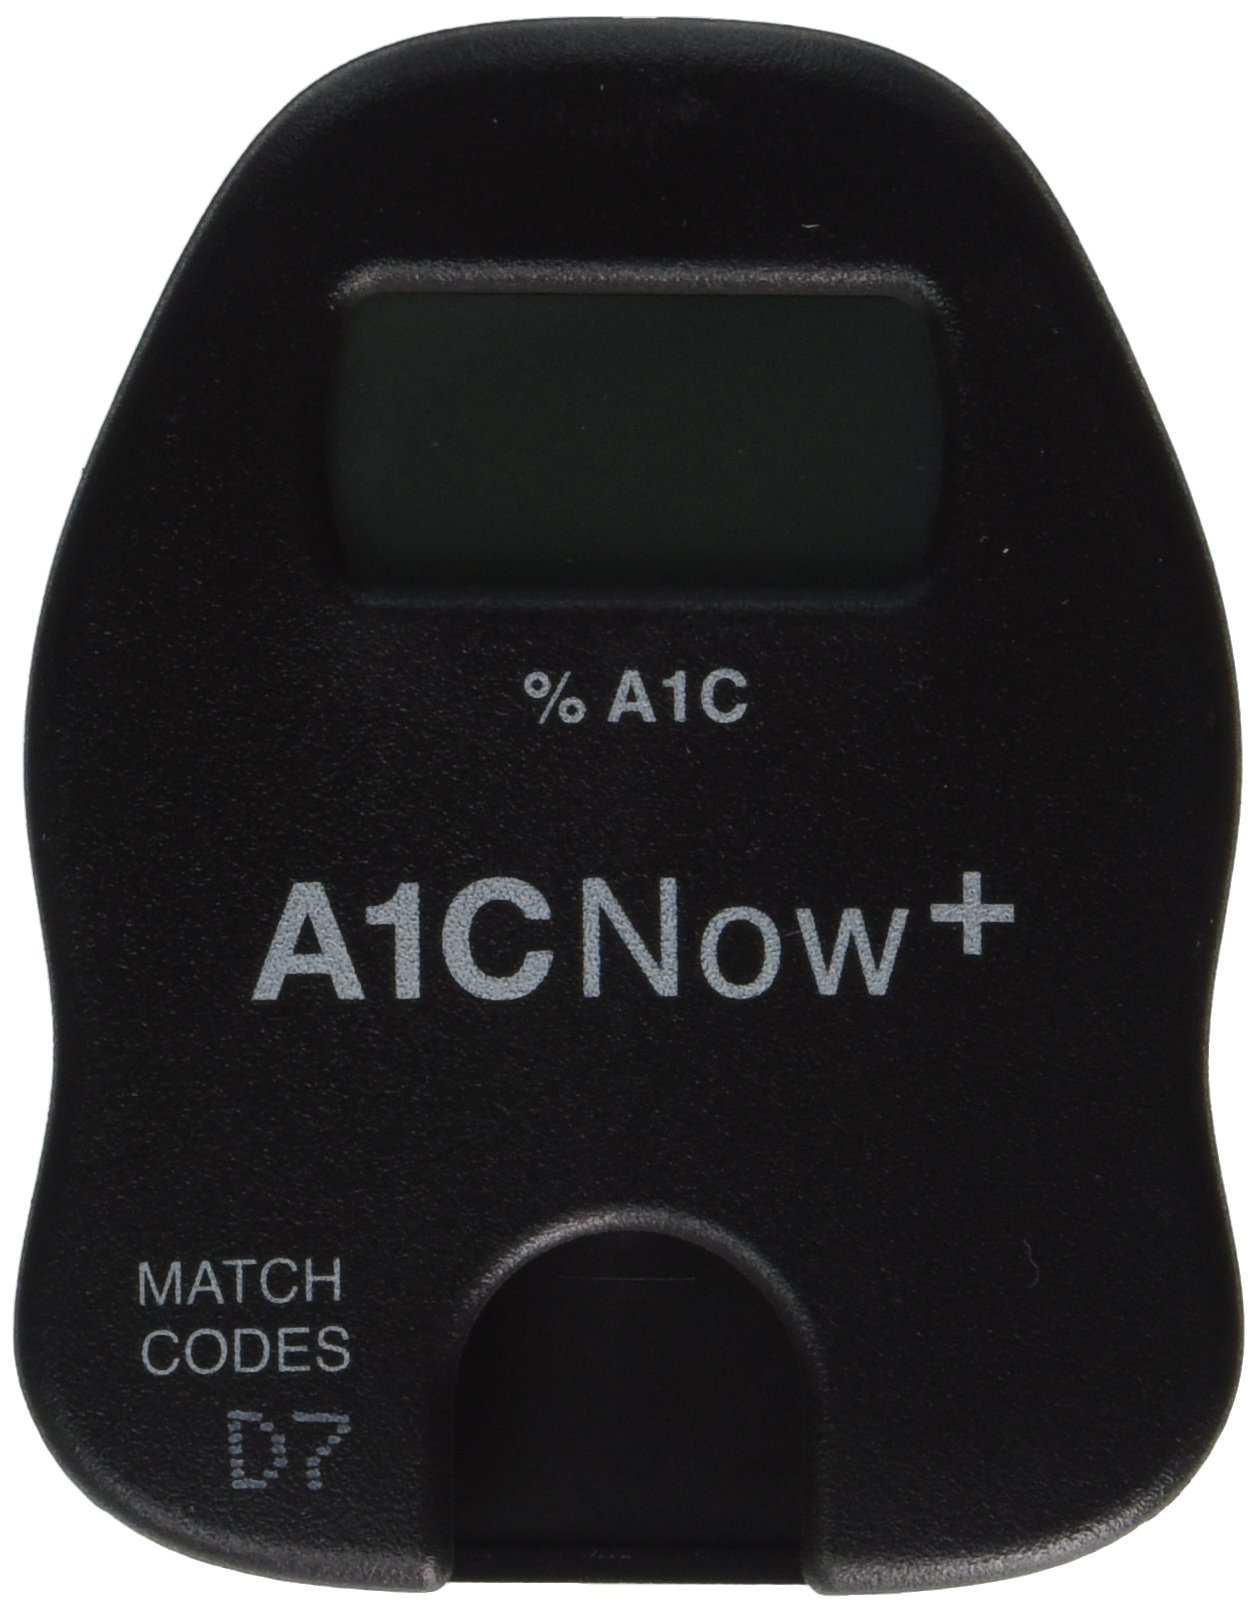 A1CNow+, Hba1c Blood Monitor 20 tests/box